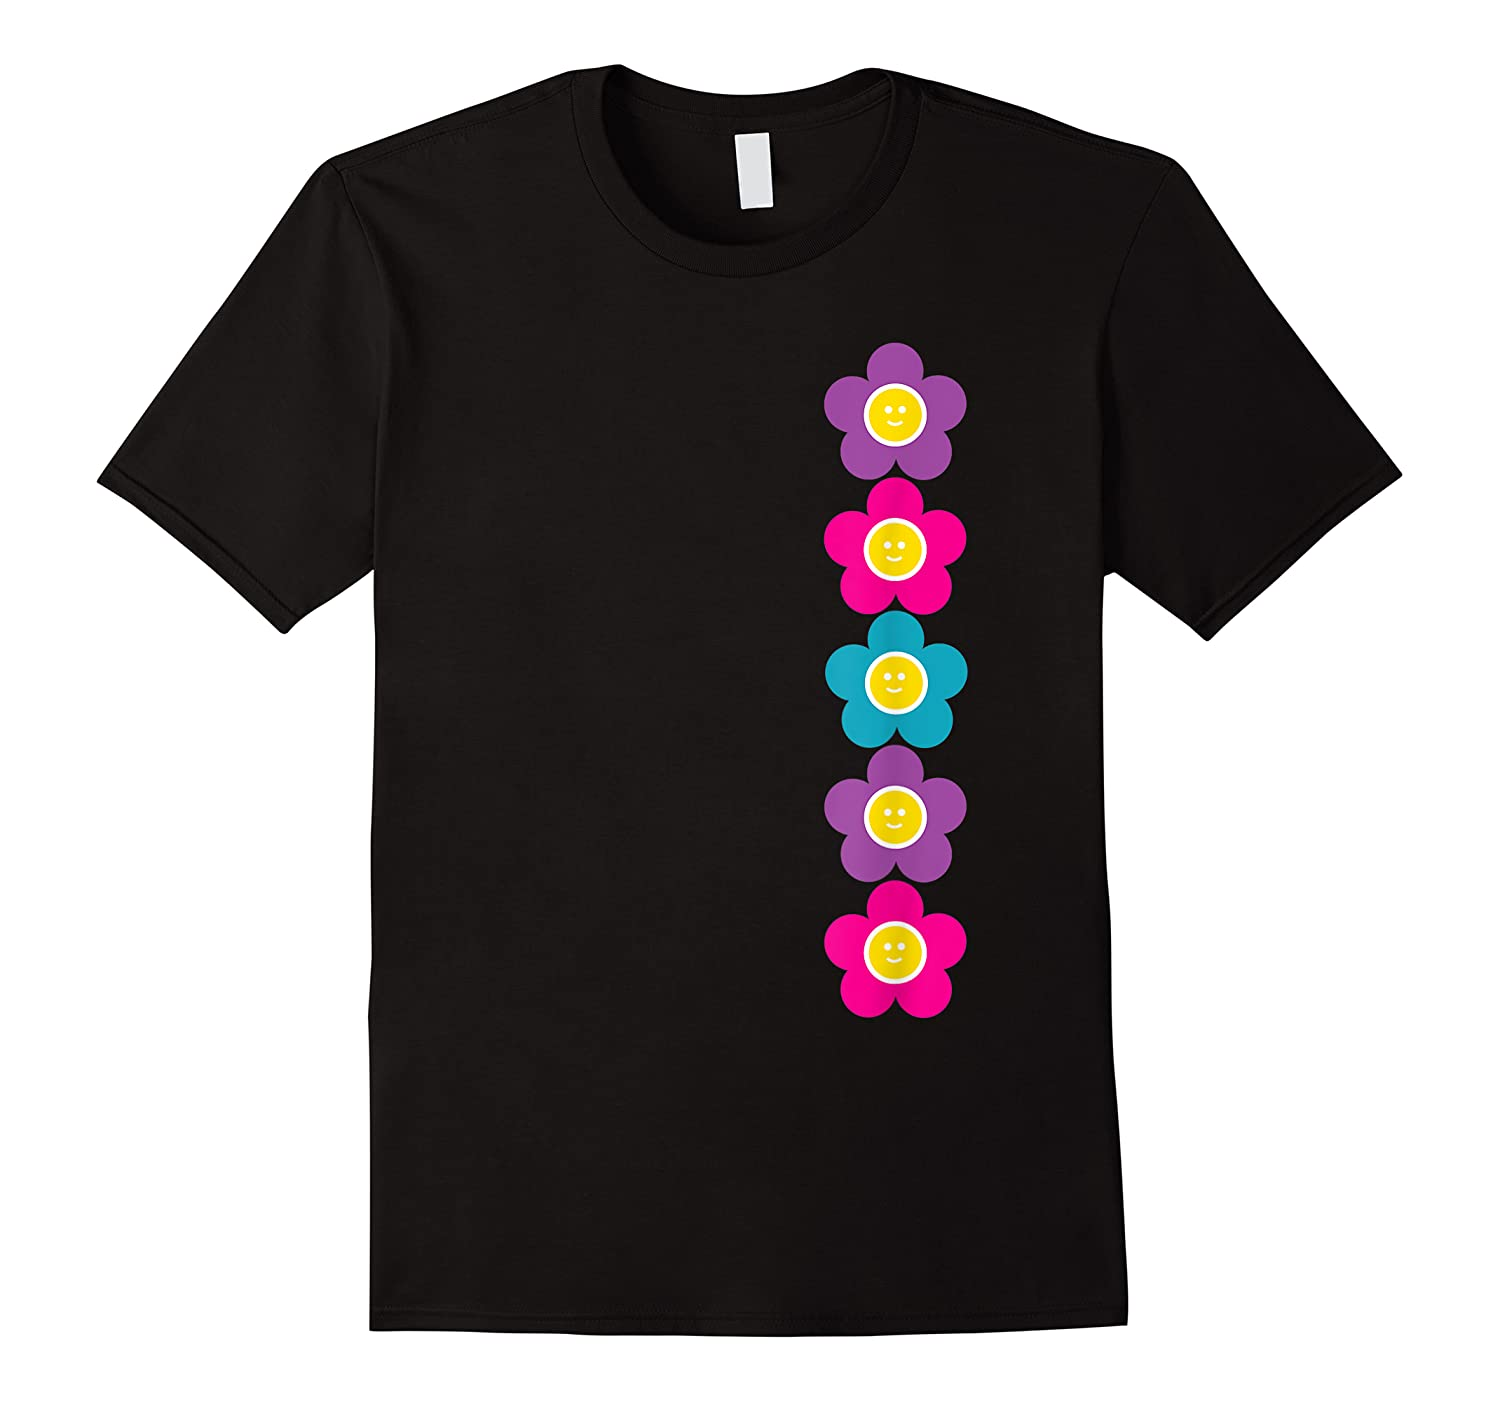 Daisy Flower Pattern Happy, Fun, Bright And Colorful Shirts